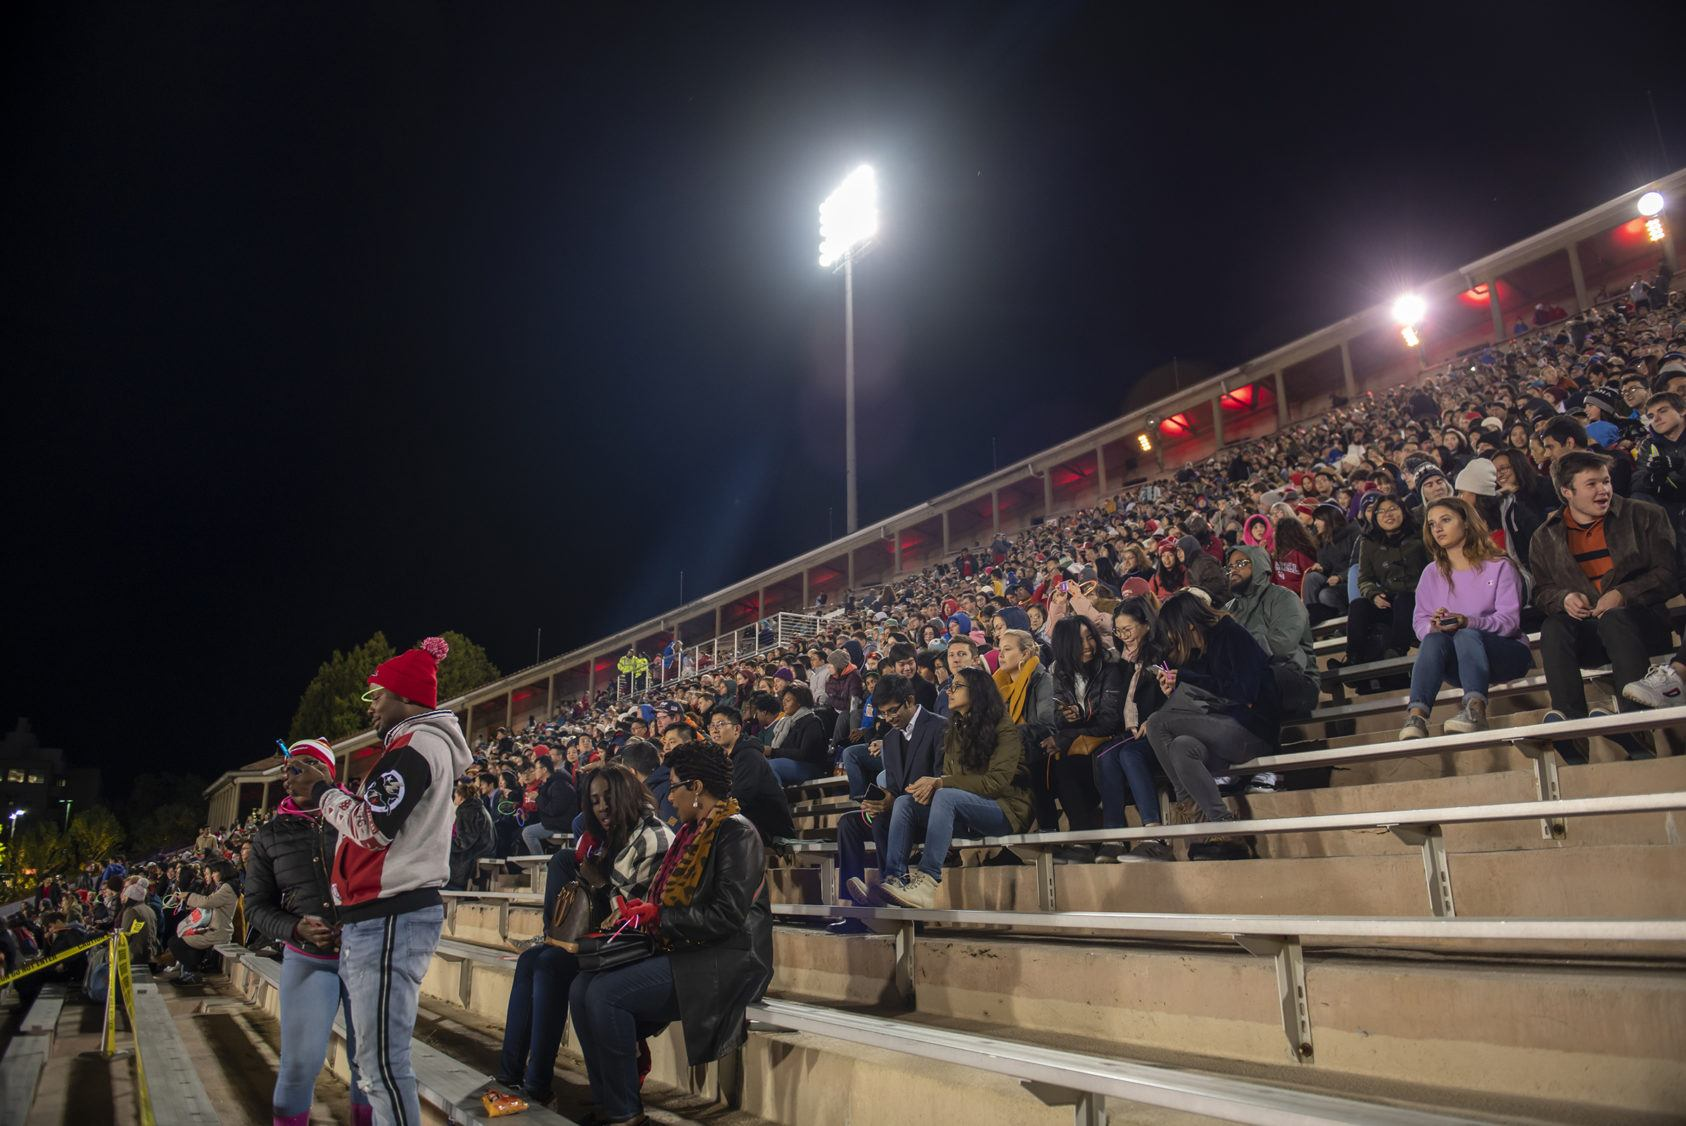 The Schoellkopf Field stands, full of spectators at night.